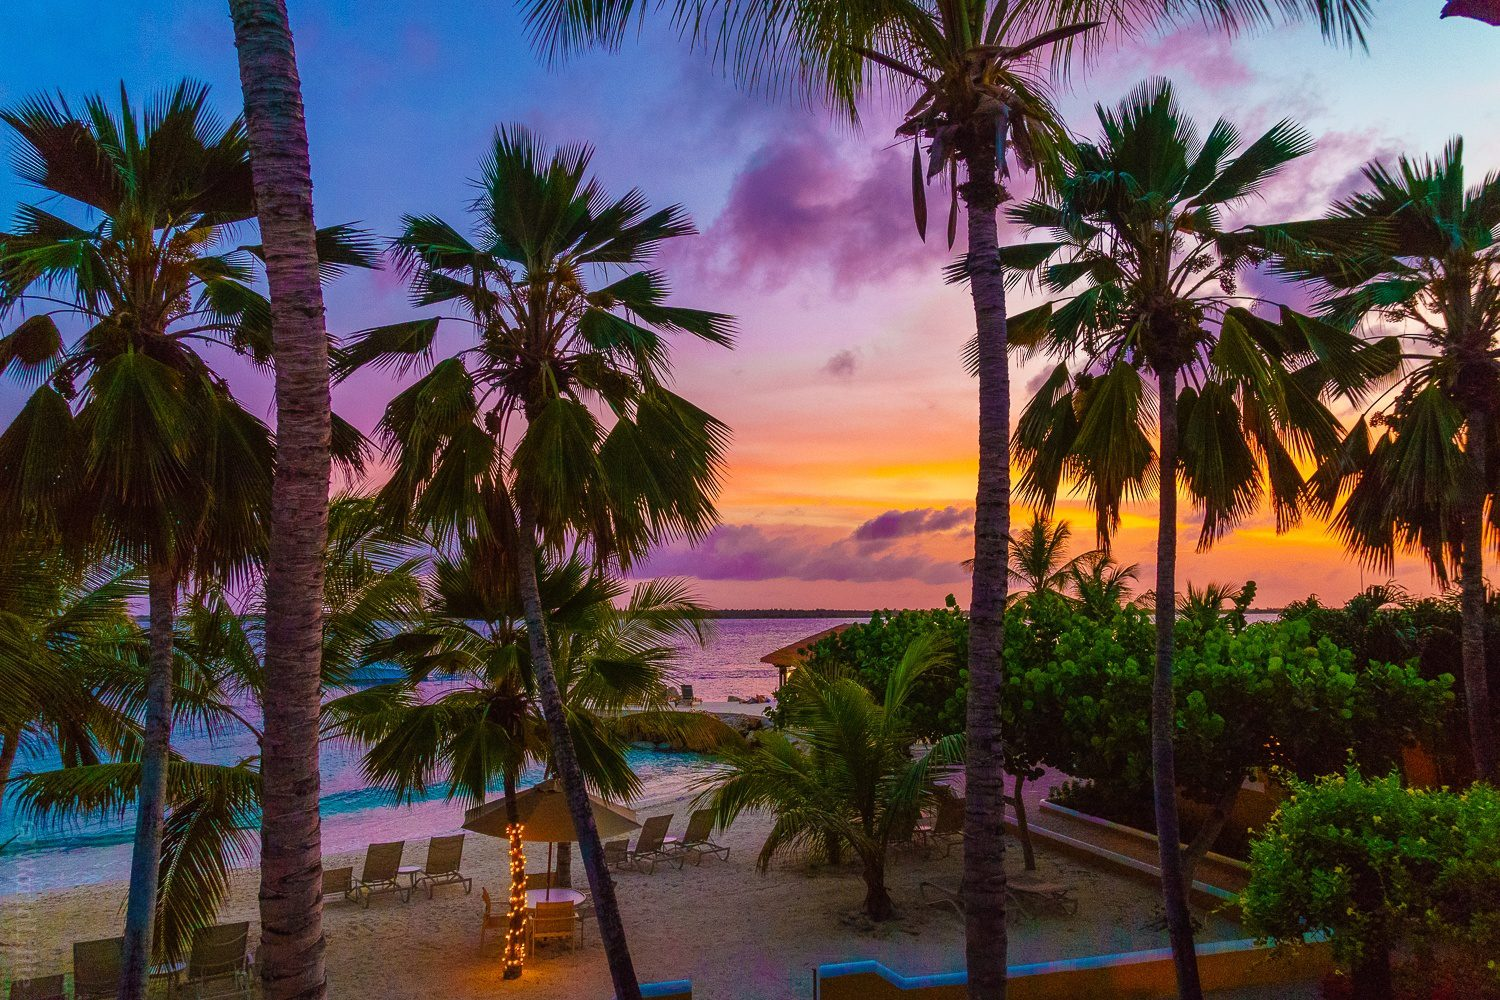 The Bonaire beach sunset view from my balcony.